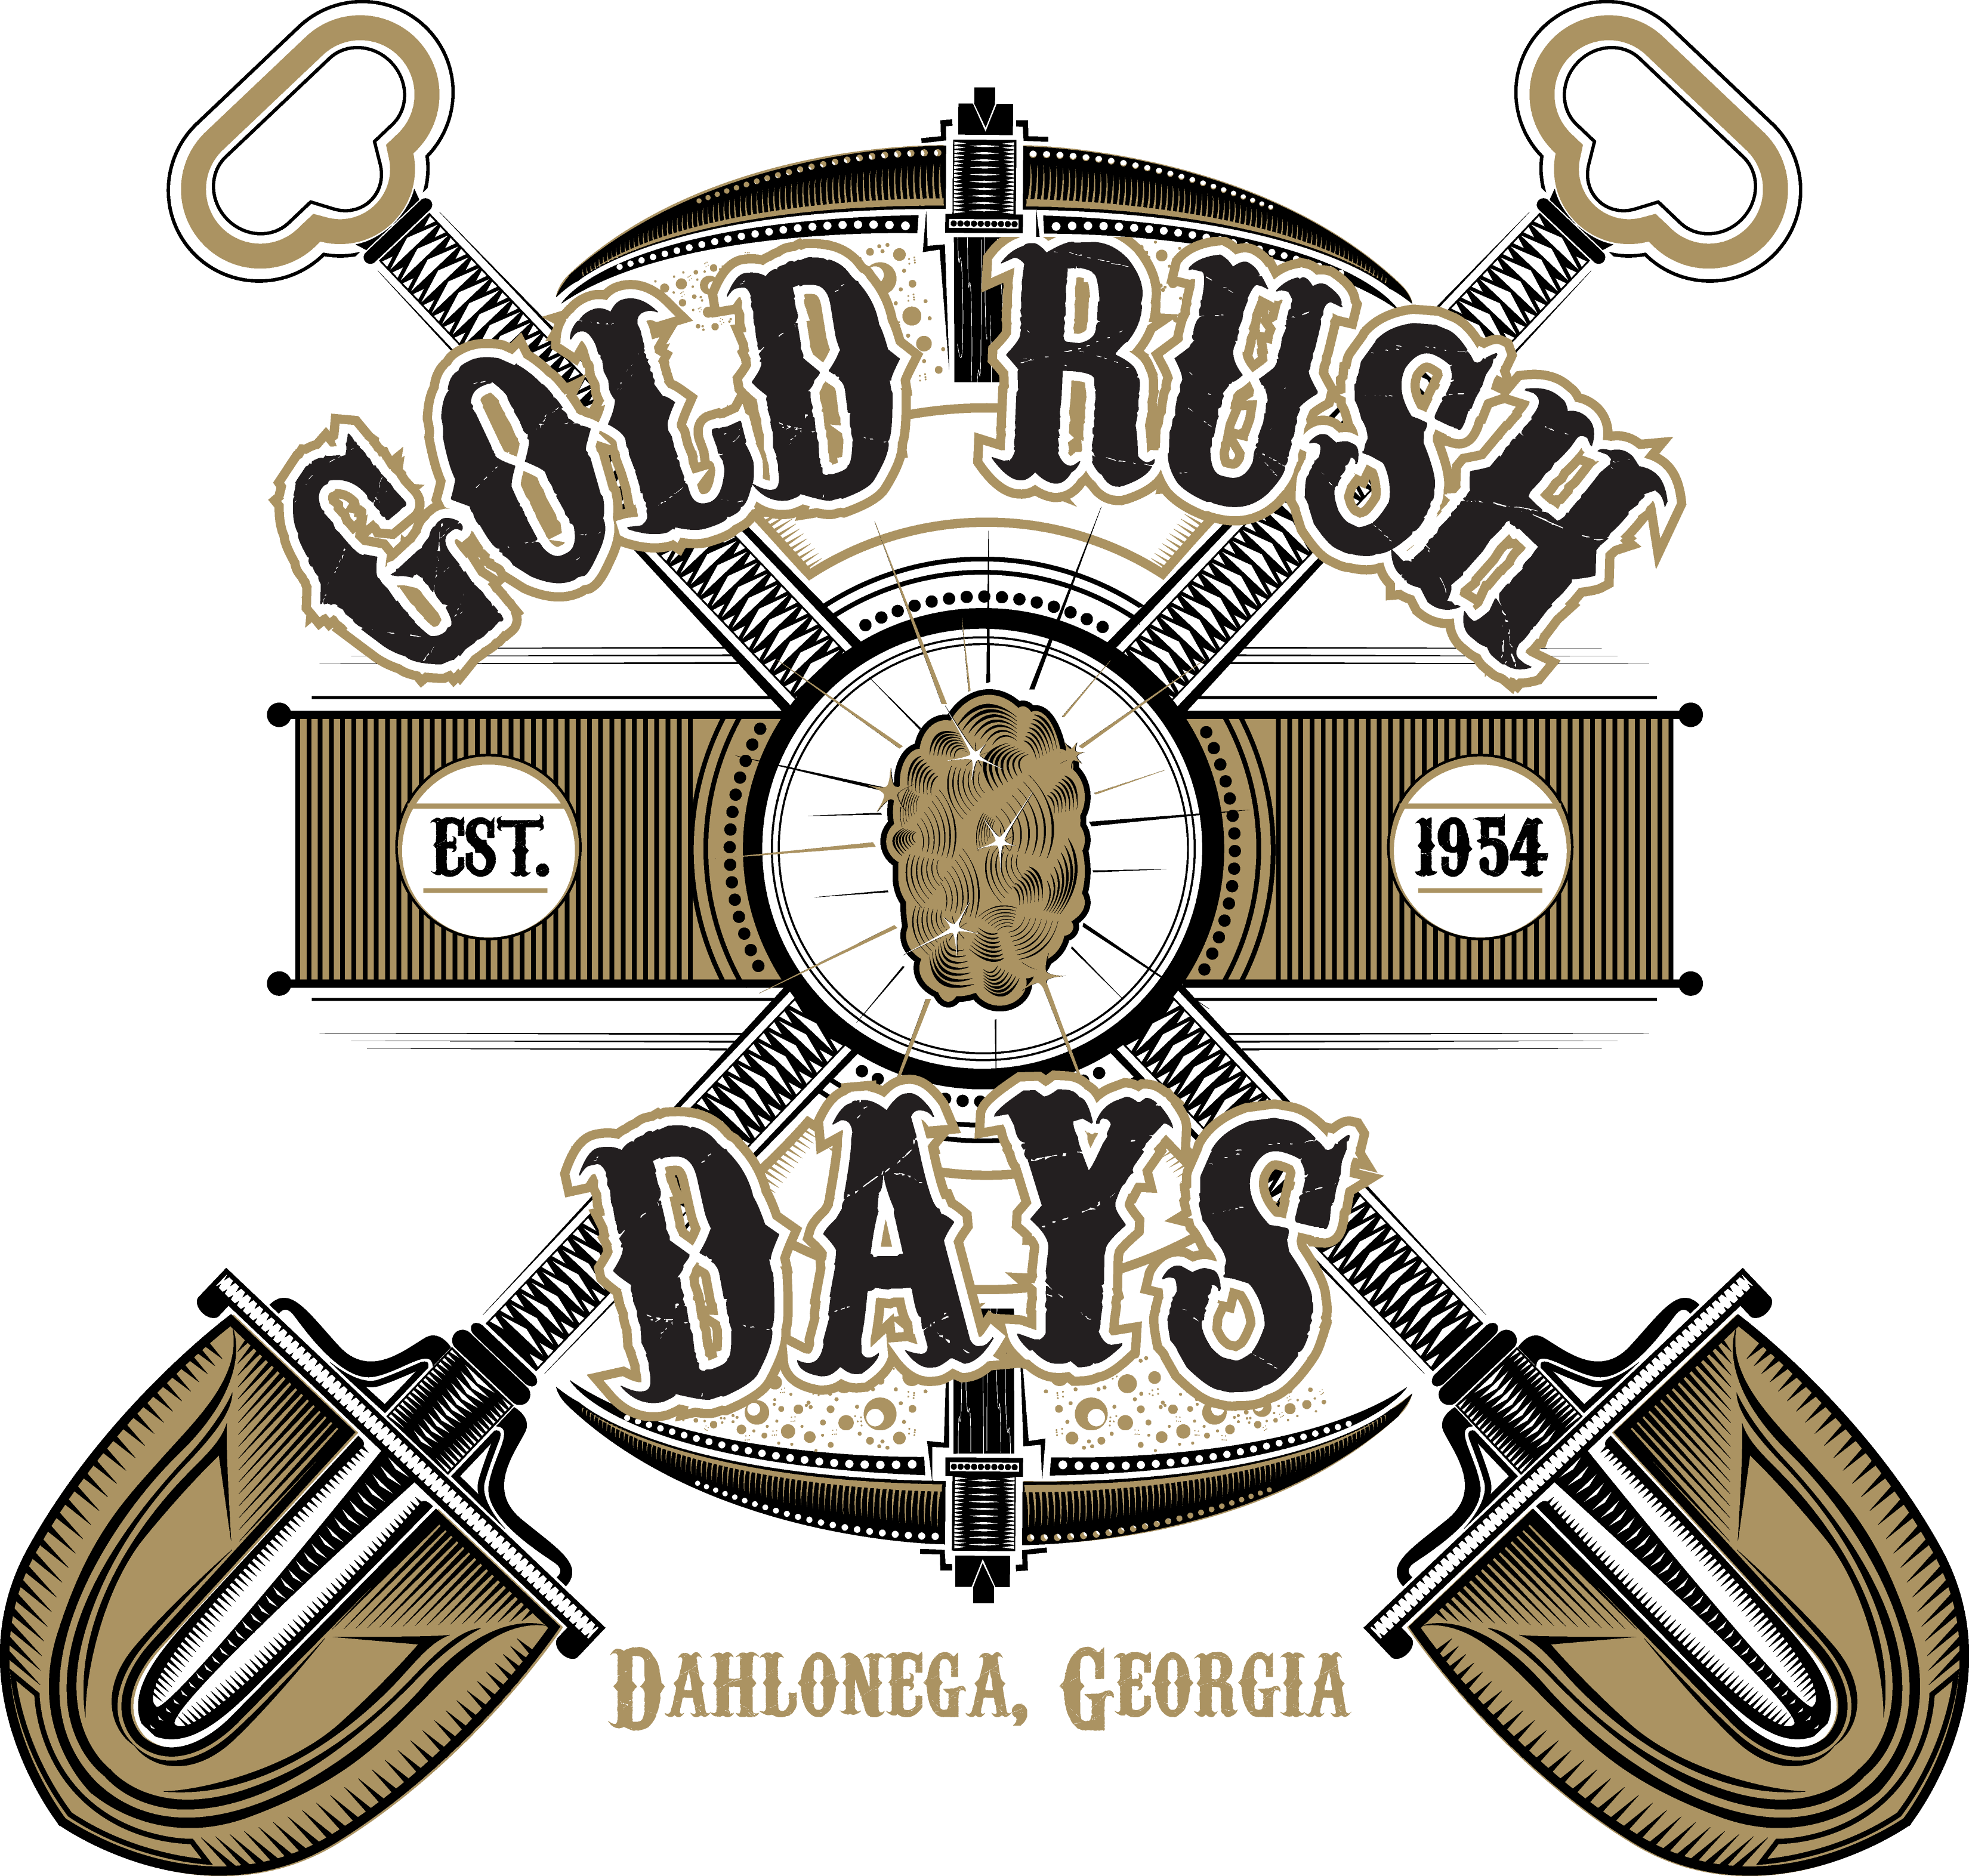 Gold Rush wallpapers TV Show HQ Gold Rush pictures 4K 3300x3144